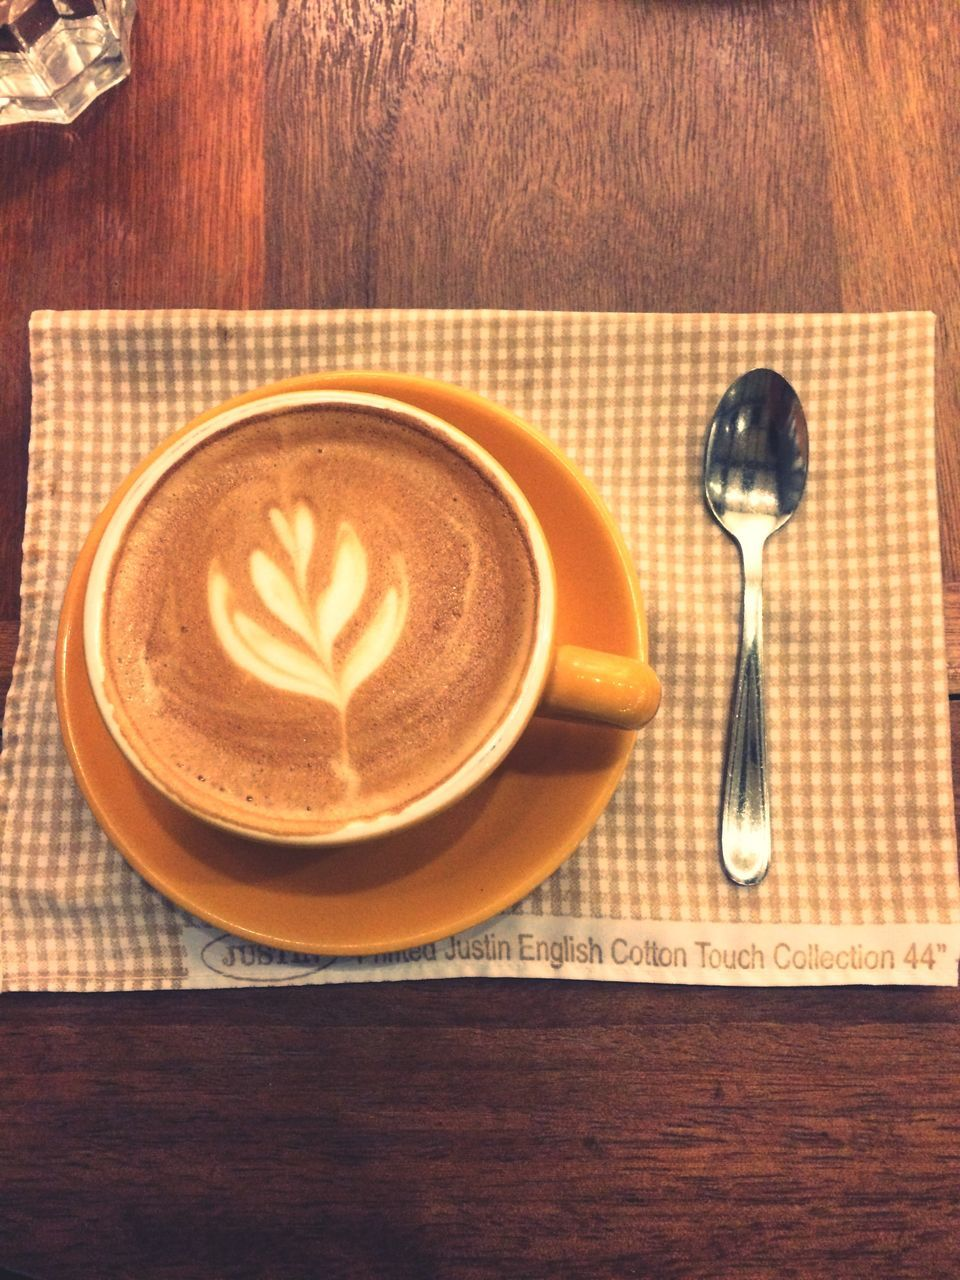 table, coffee cup, coffee - drink, food and drink, refreshment, indoors, drink, no people, high angle view, frothy drink, wood - material, froth art, directly above, cappuccino, plate, close-up, freshness, day